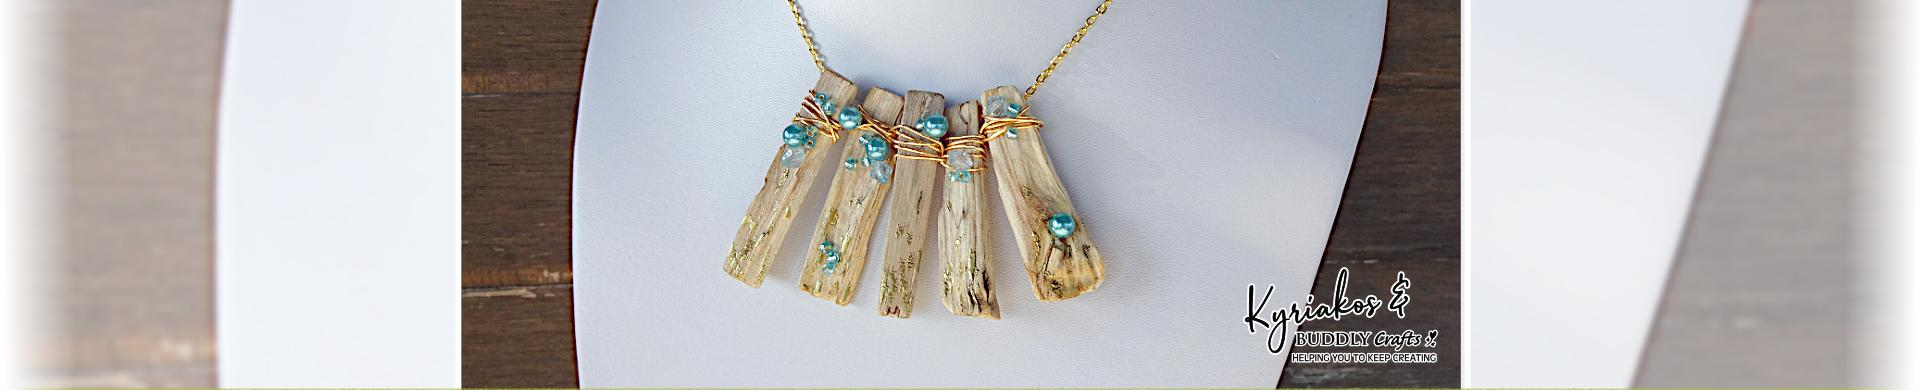 Wired Driftwood Necklace